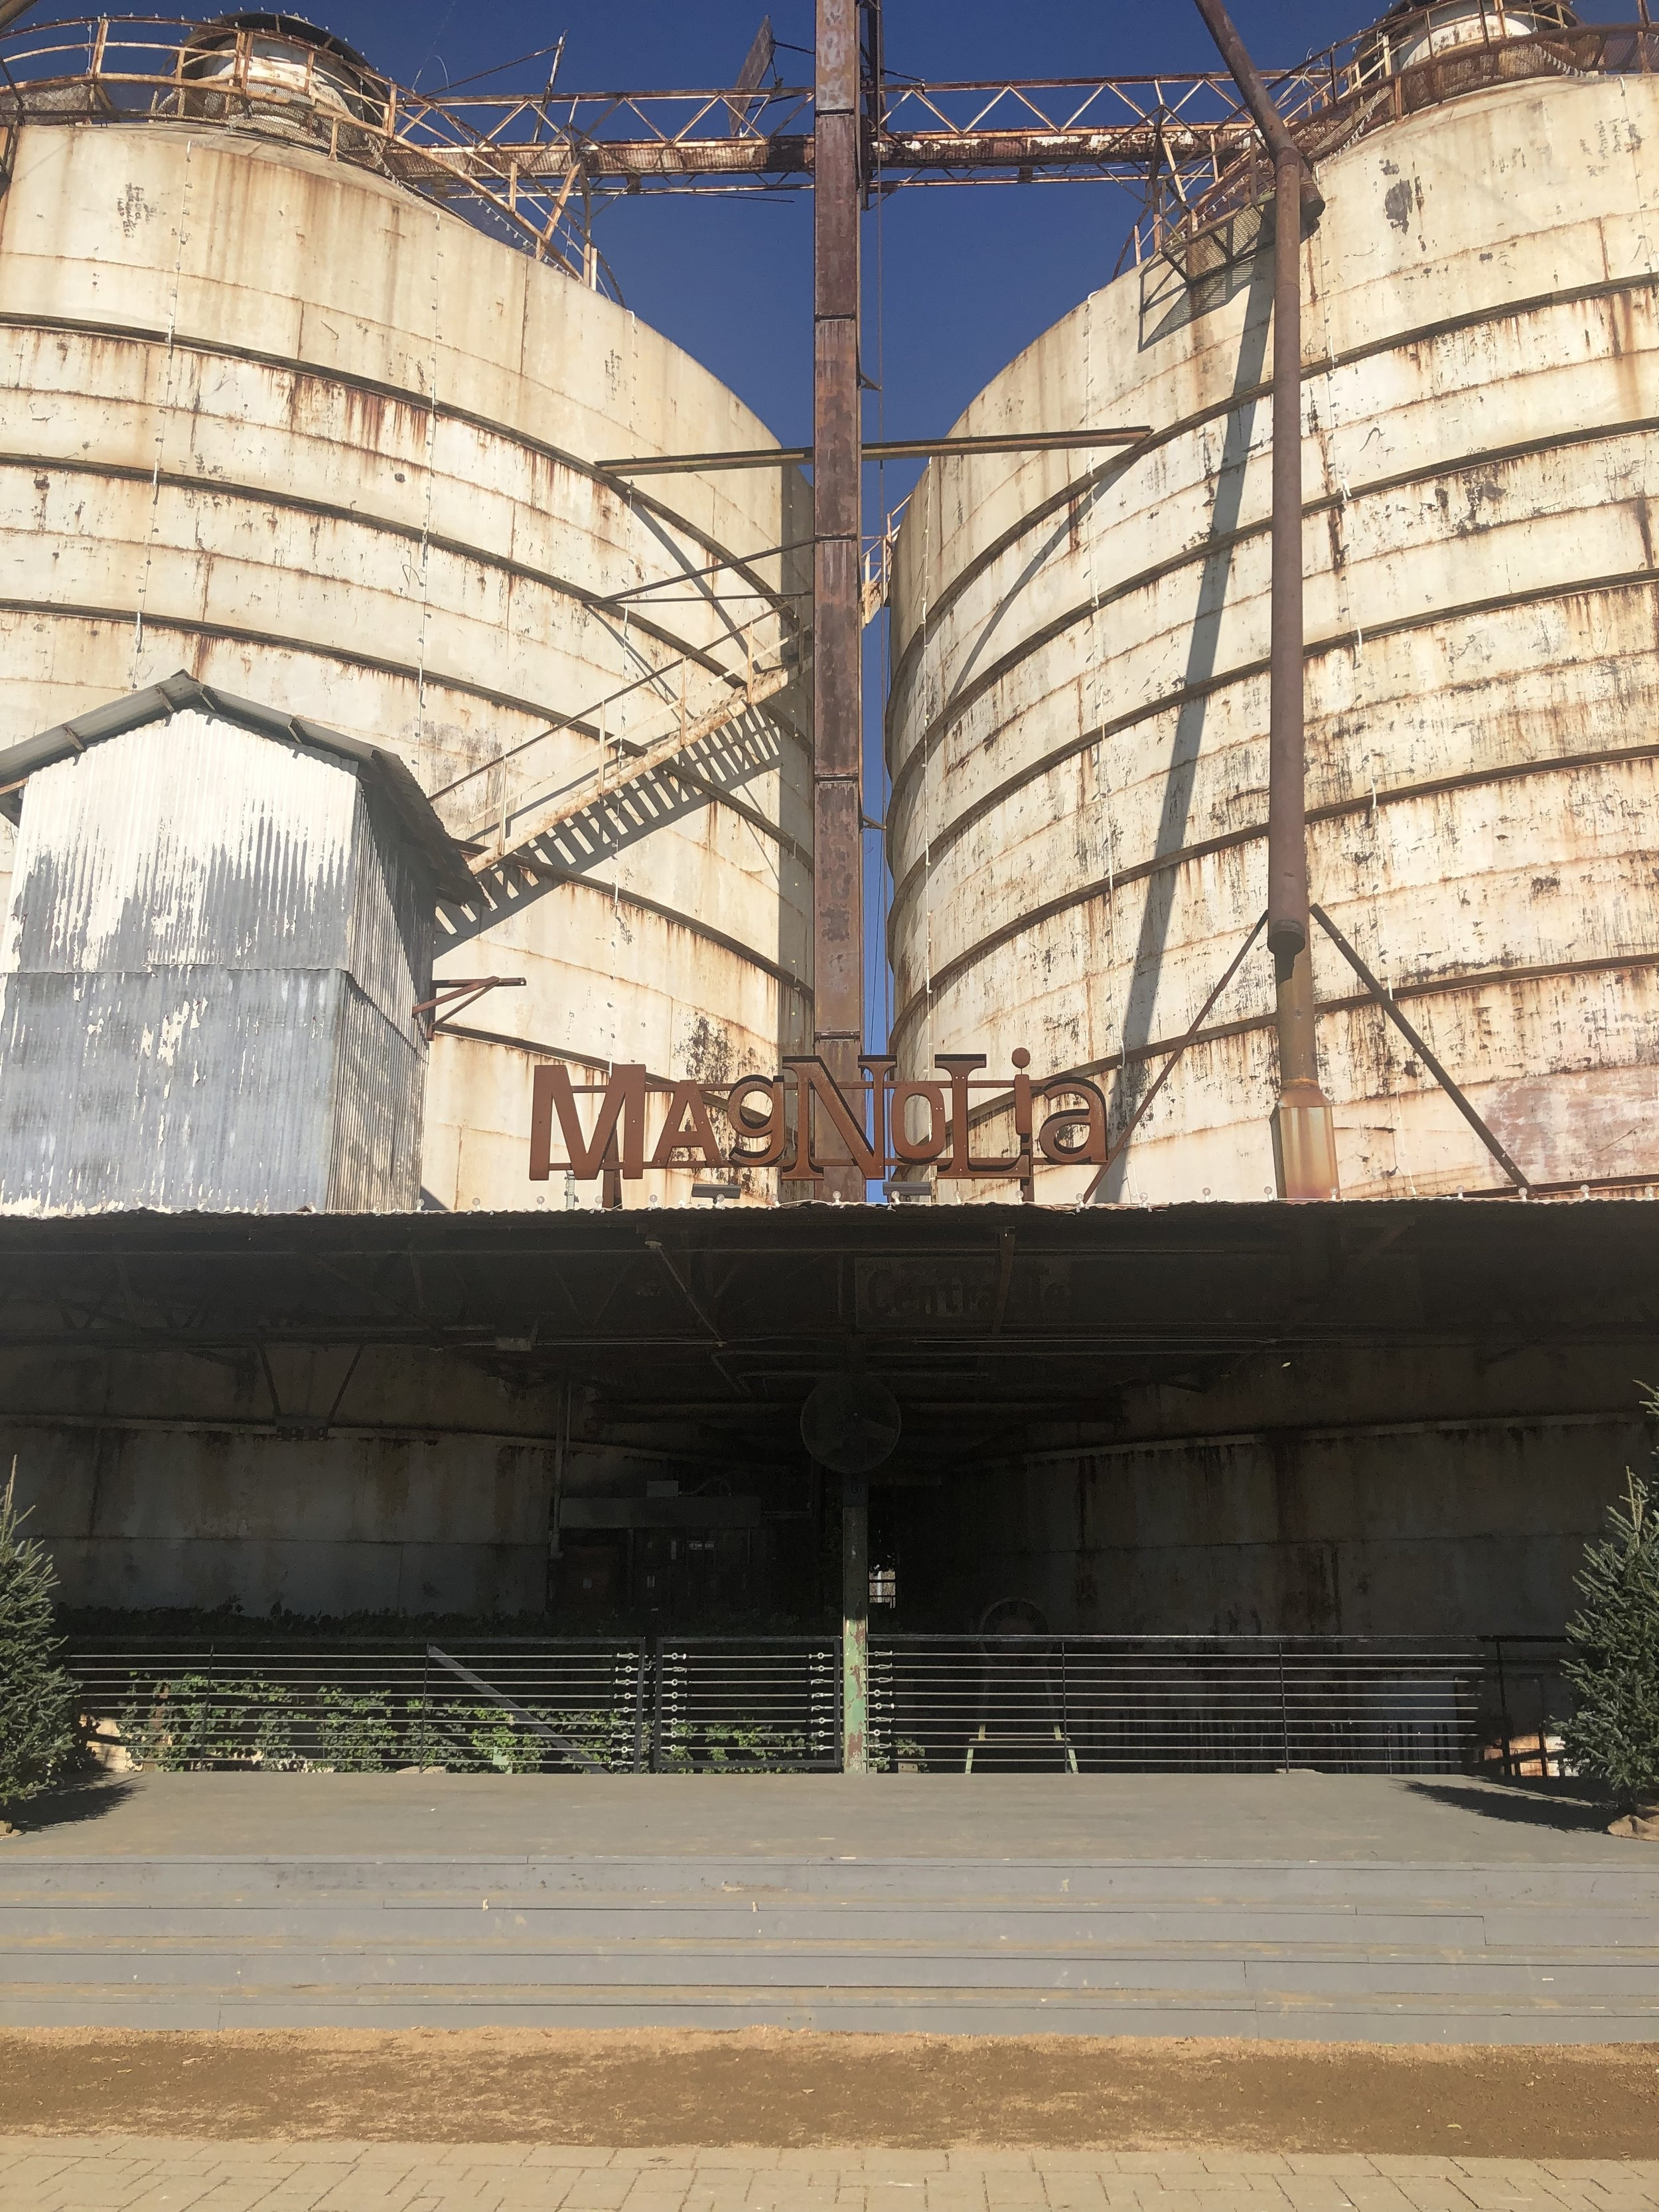 The infamous silos. It took a lot of creativity to see what was ahead.